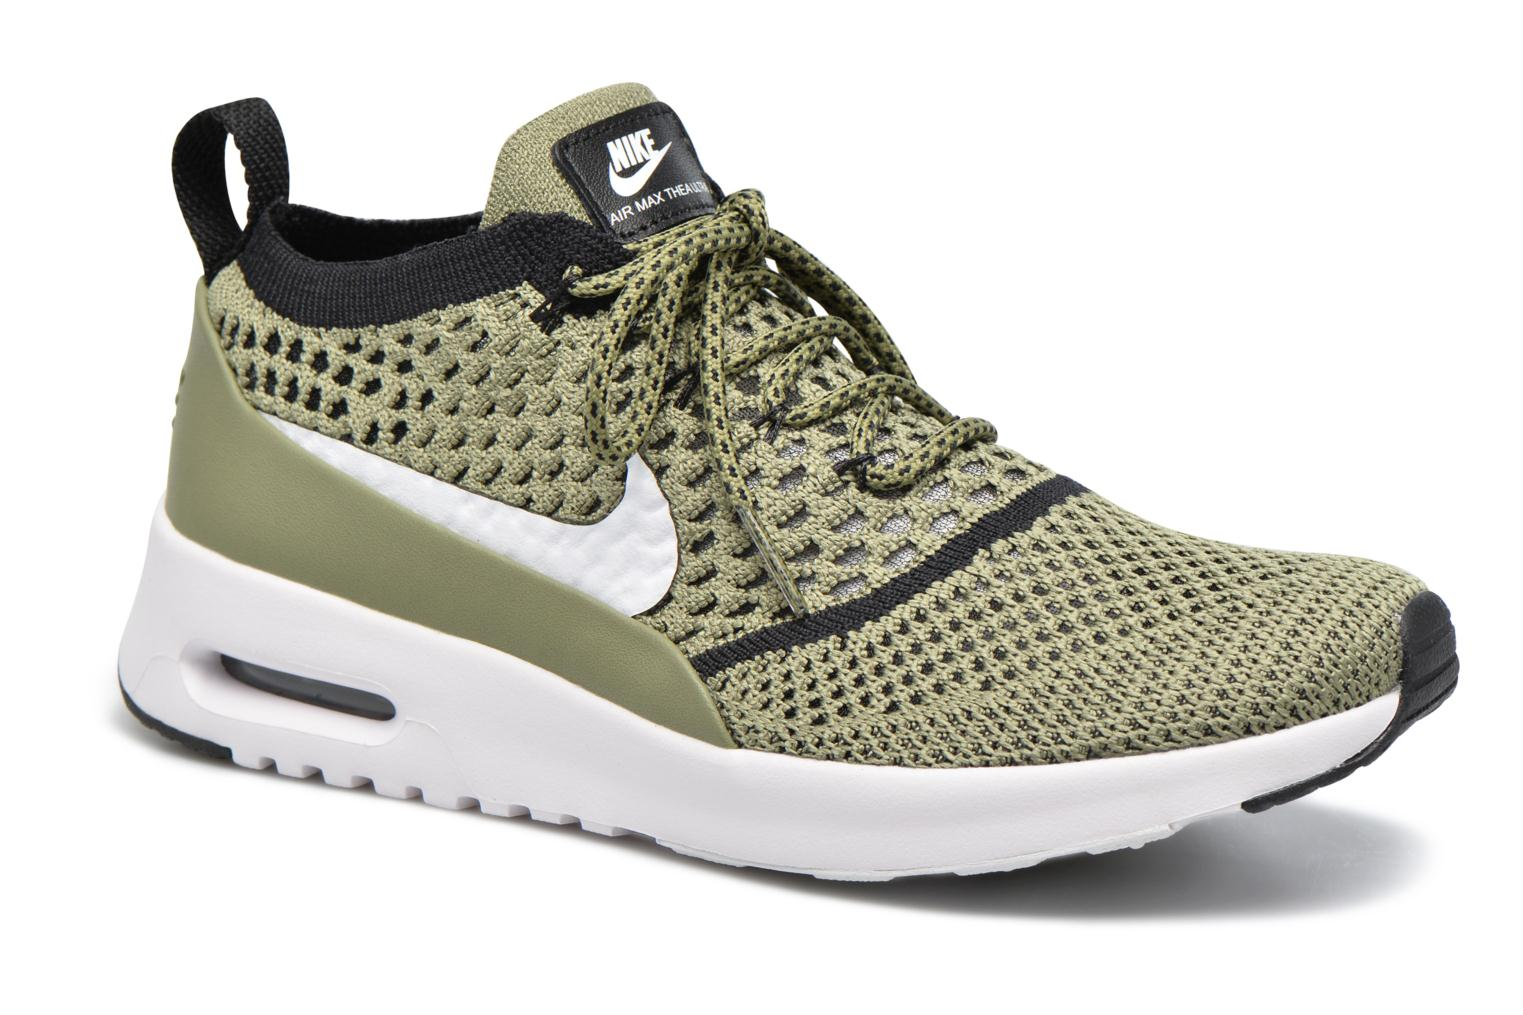 W Nike Air Max Thea Ultra Fk Palm Green/White-Black